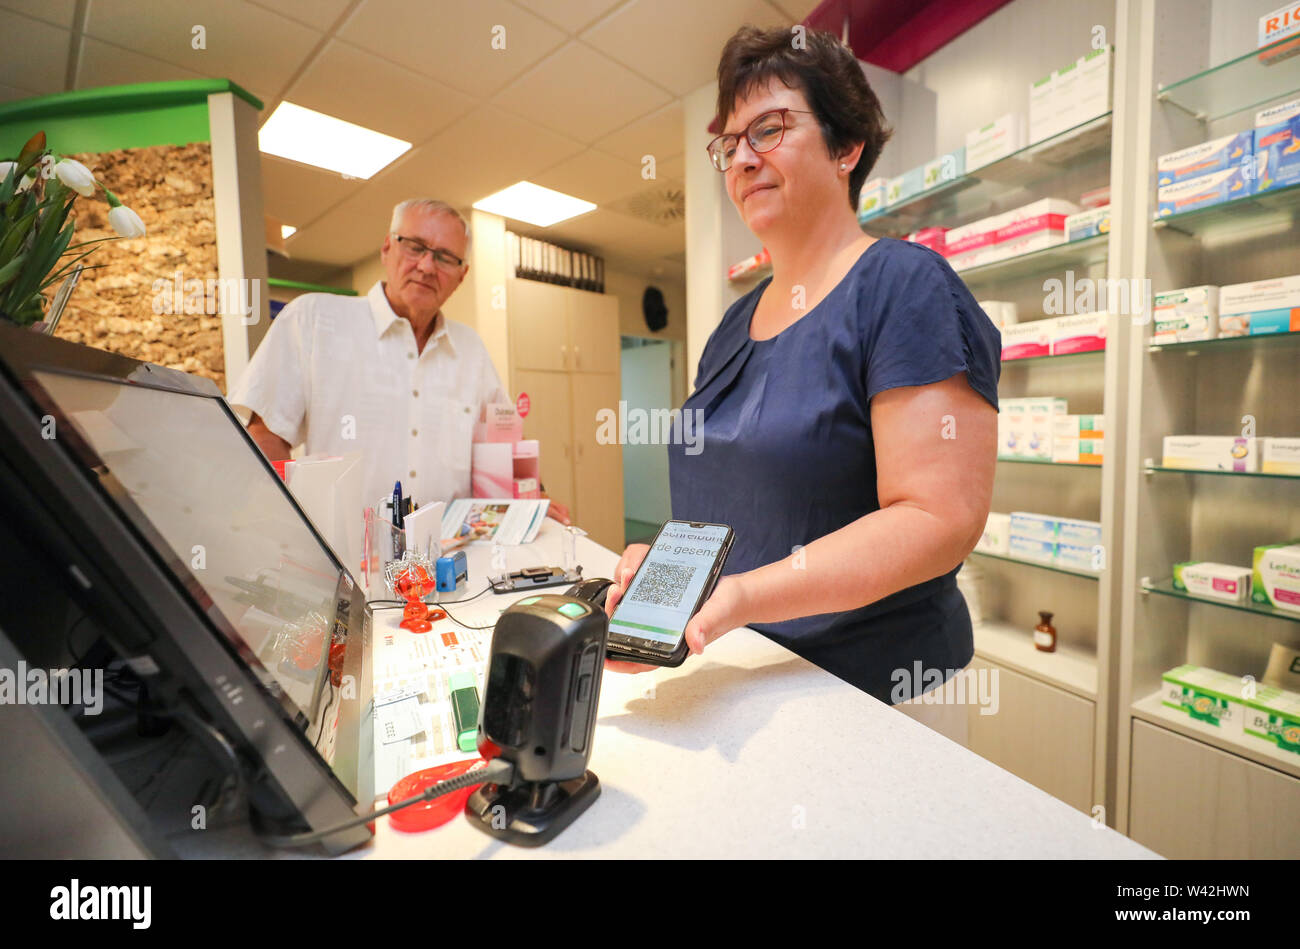 19 July 2019, Saxony-Anhalt, Halle (Saale): Pharmacist Ursula Gütle scans the code for the digital prescription from Norbert Neumann's mobile phone. From the point of view of a housing cooperative in Halle, telemedicine could be a great help, especially for older people. In a project in 20 apartments, 94 percent of the test persons rated the digital doctor's interview as very good or good. For the 'Haendel II' project, 20 apartments were equipped with the appropriate technology. Subjects were able to reach a doctor via tablet. Photo: Jan Woitas/dpa-Zentralbild/dpa - Stock Image